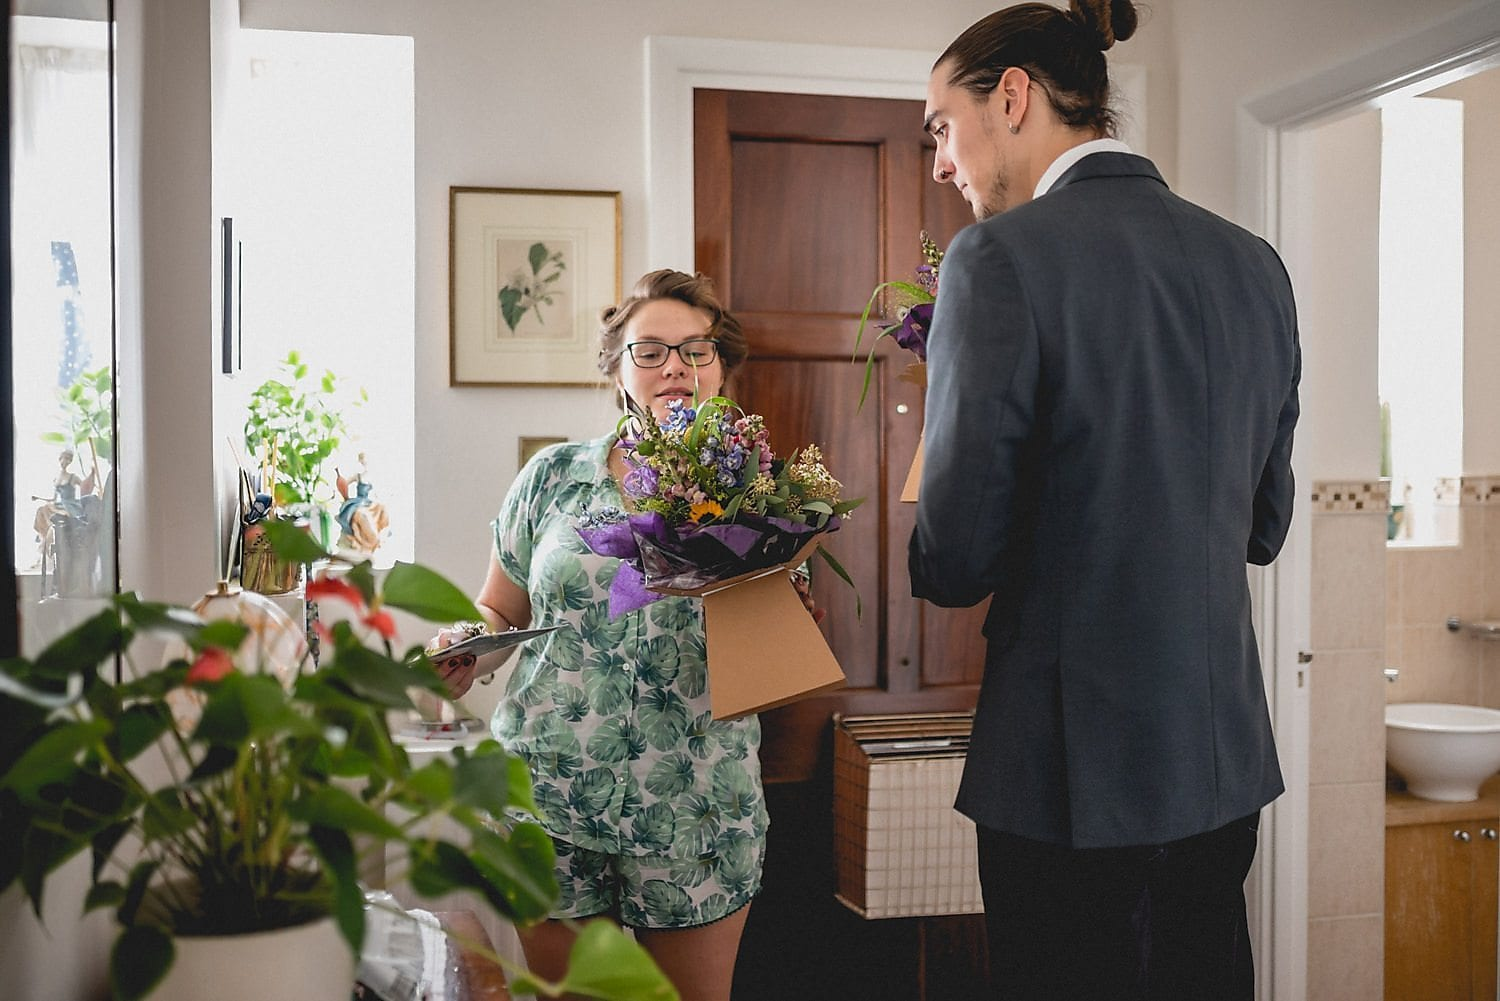 Bride Elizabeth checks over her bouquet as it's dropped off at her house